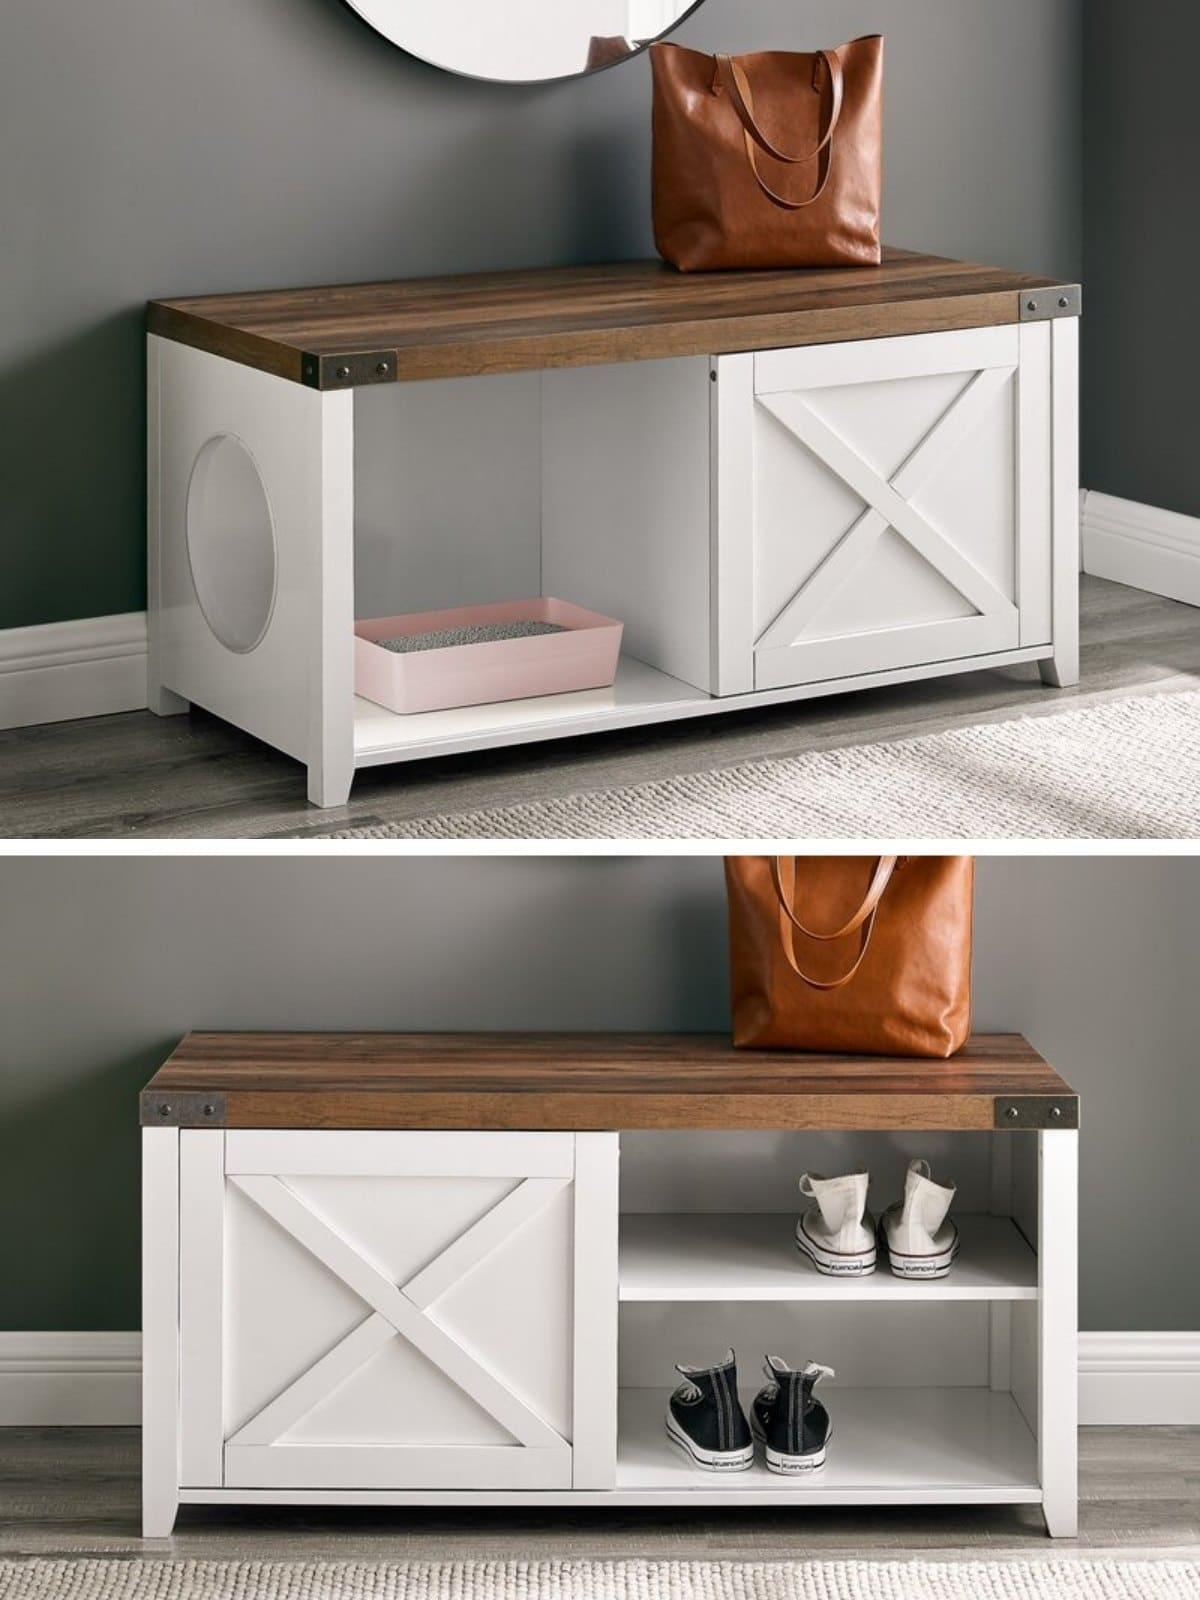 pet furniture 18 - 18 amazing pet furniture ideas that are perfect solutions for small spaces